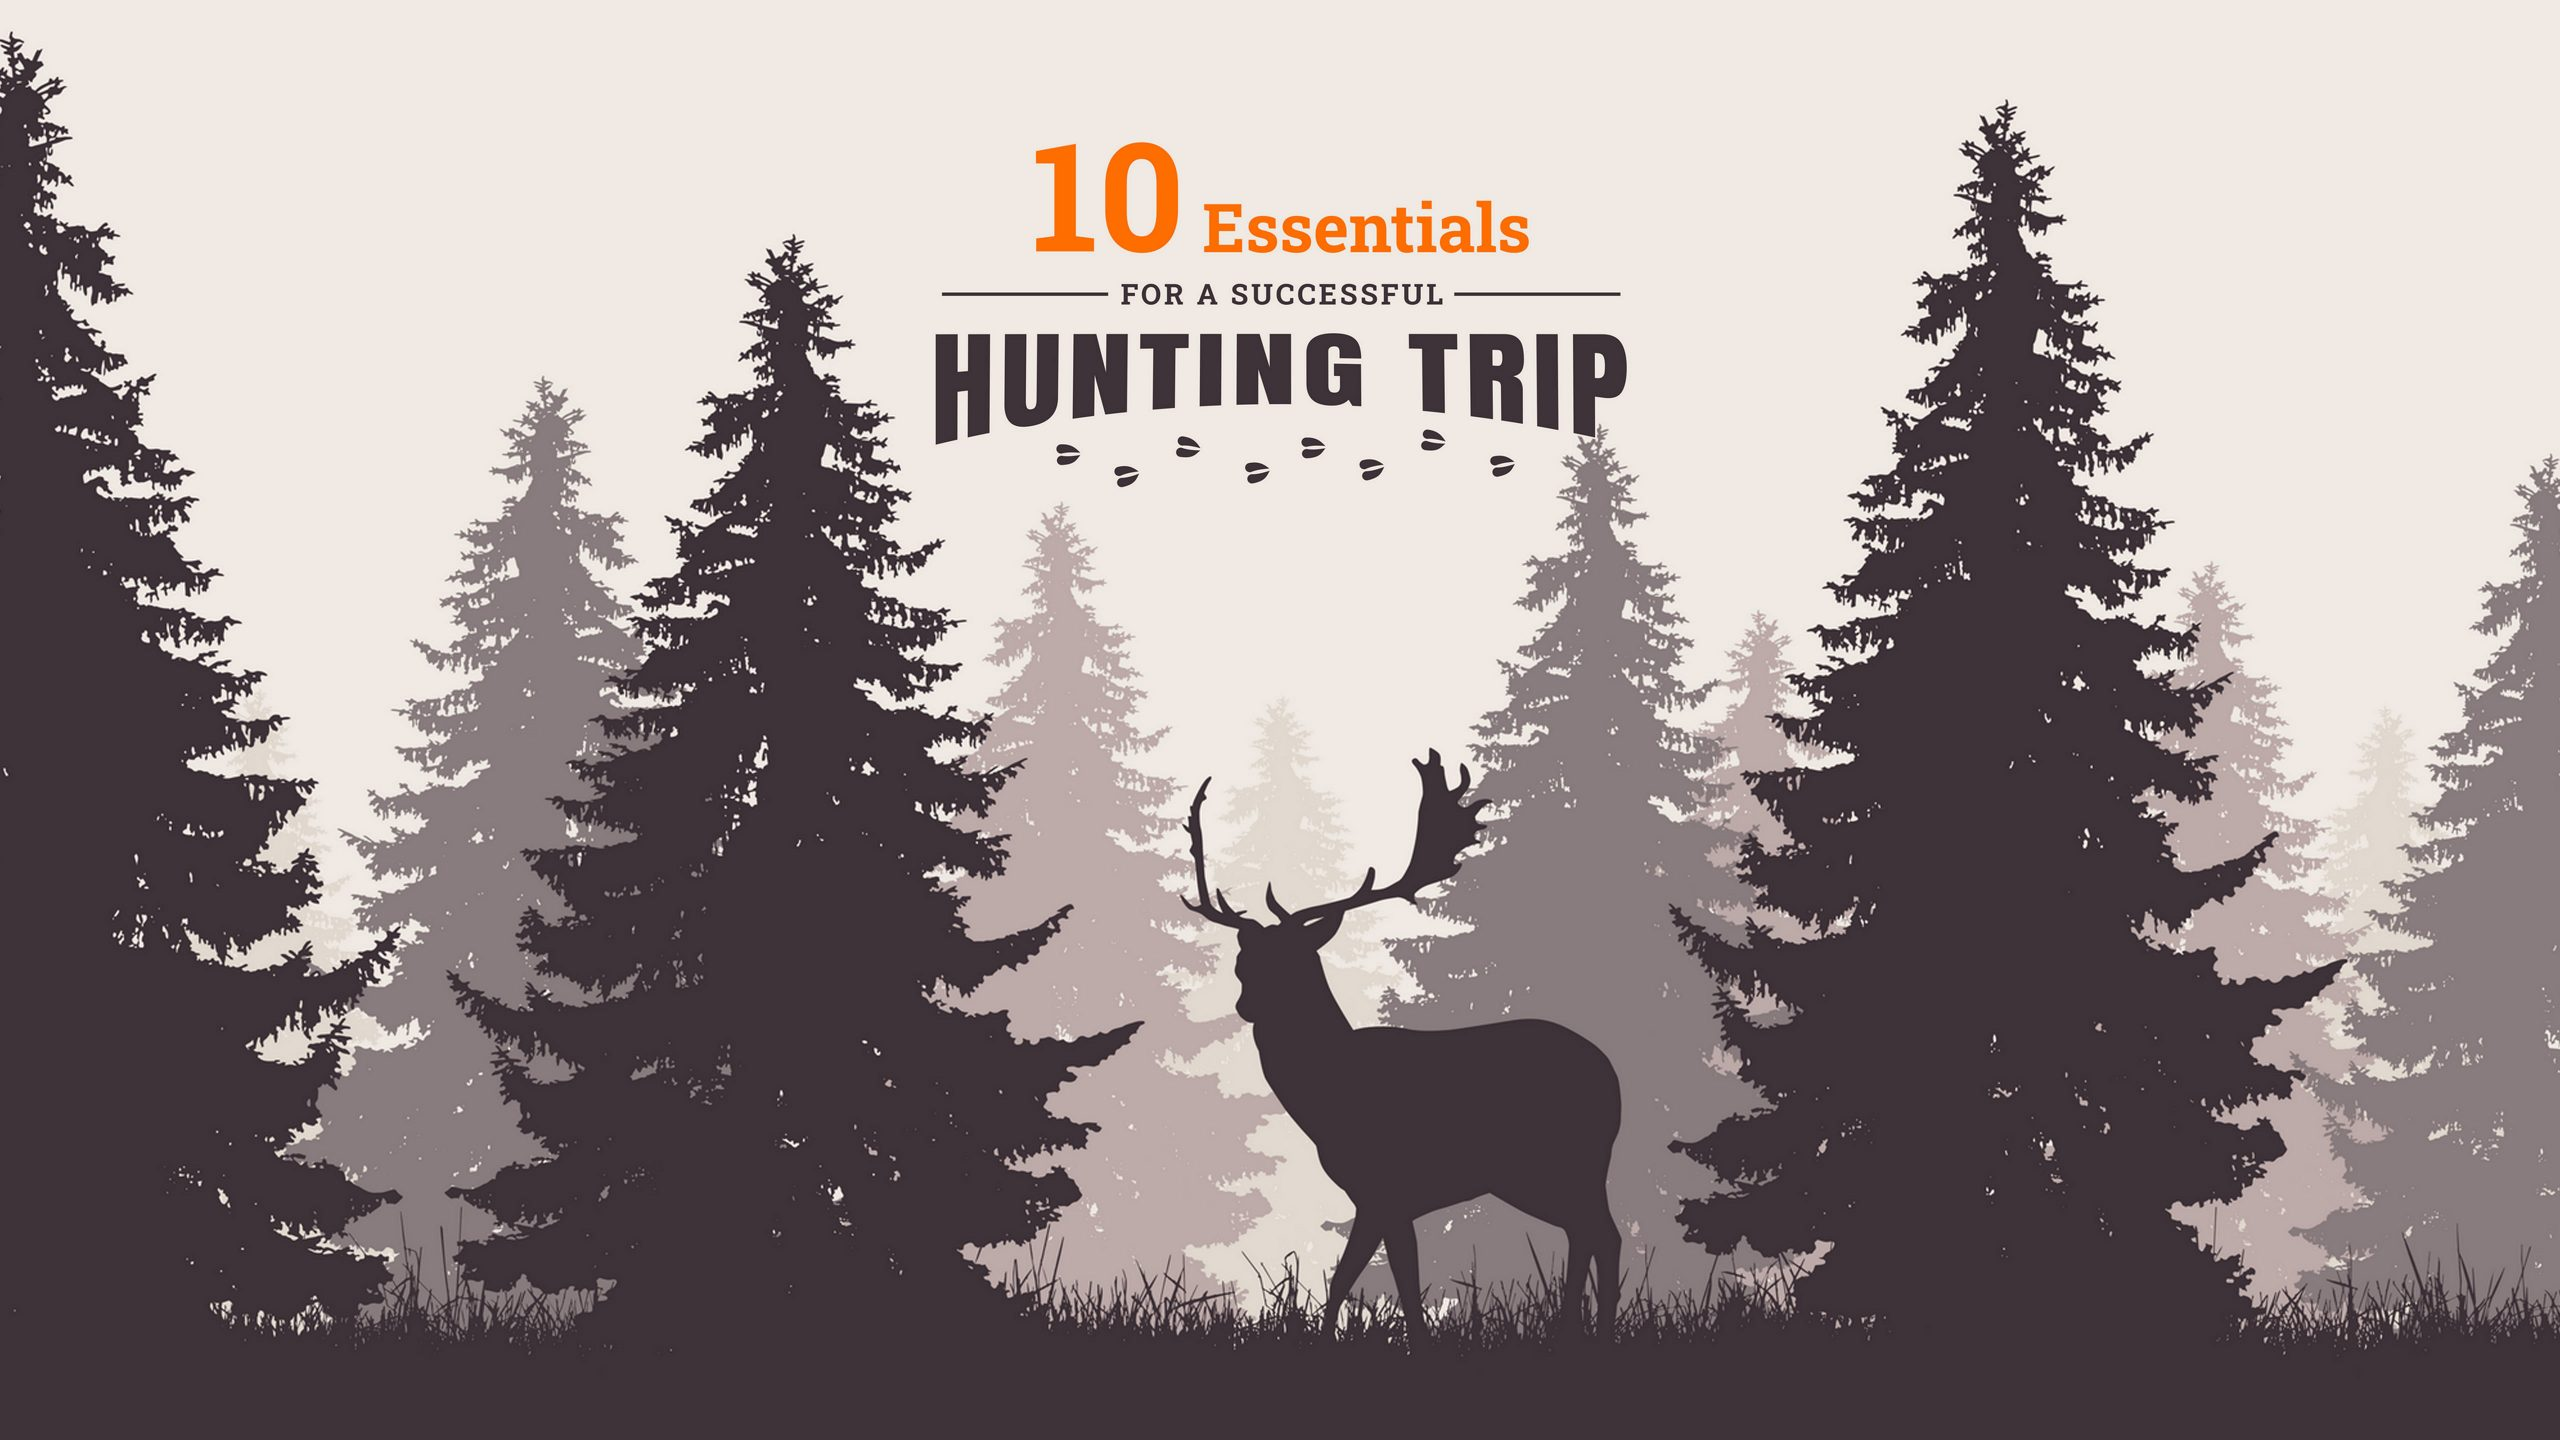 10 Essentials for a Successful Hunting Trip